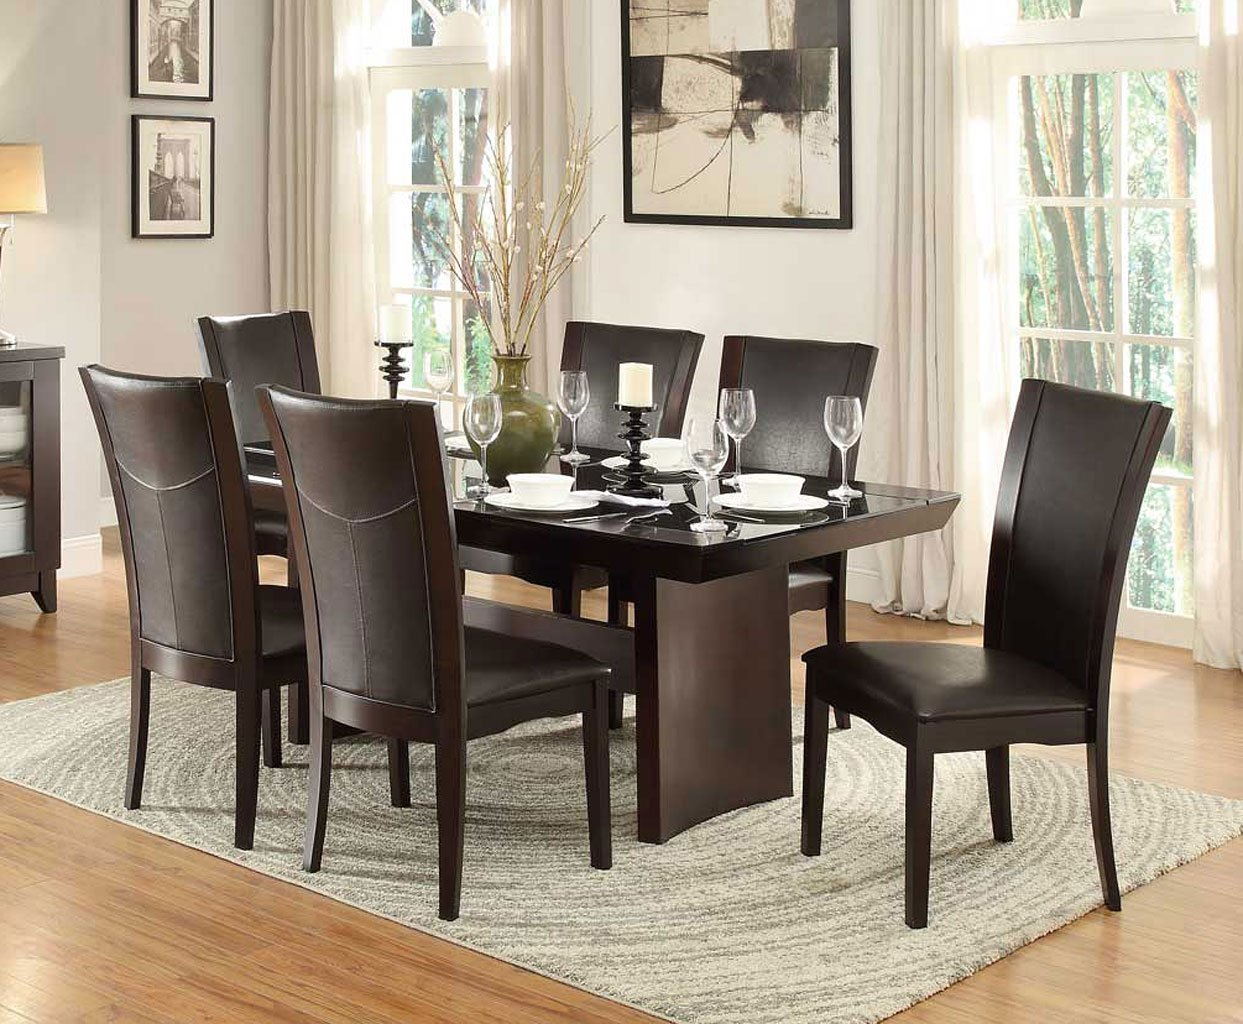 Daisy glass insert dining room set w dark brown chairs